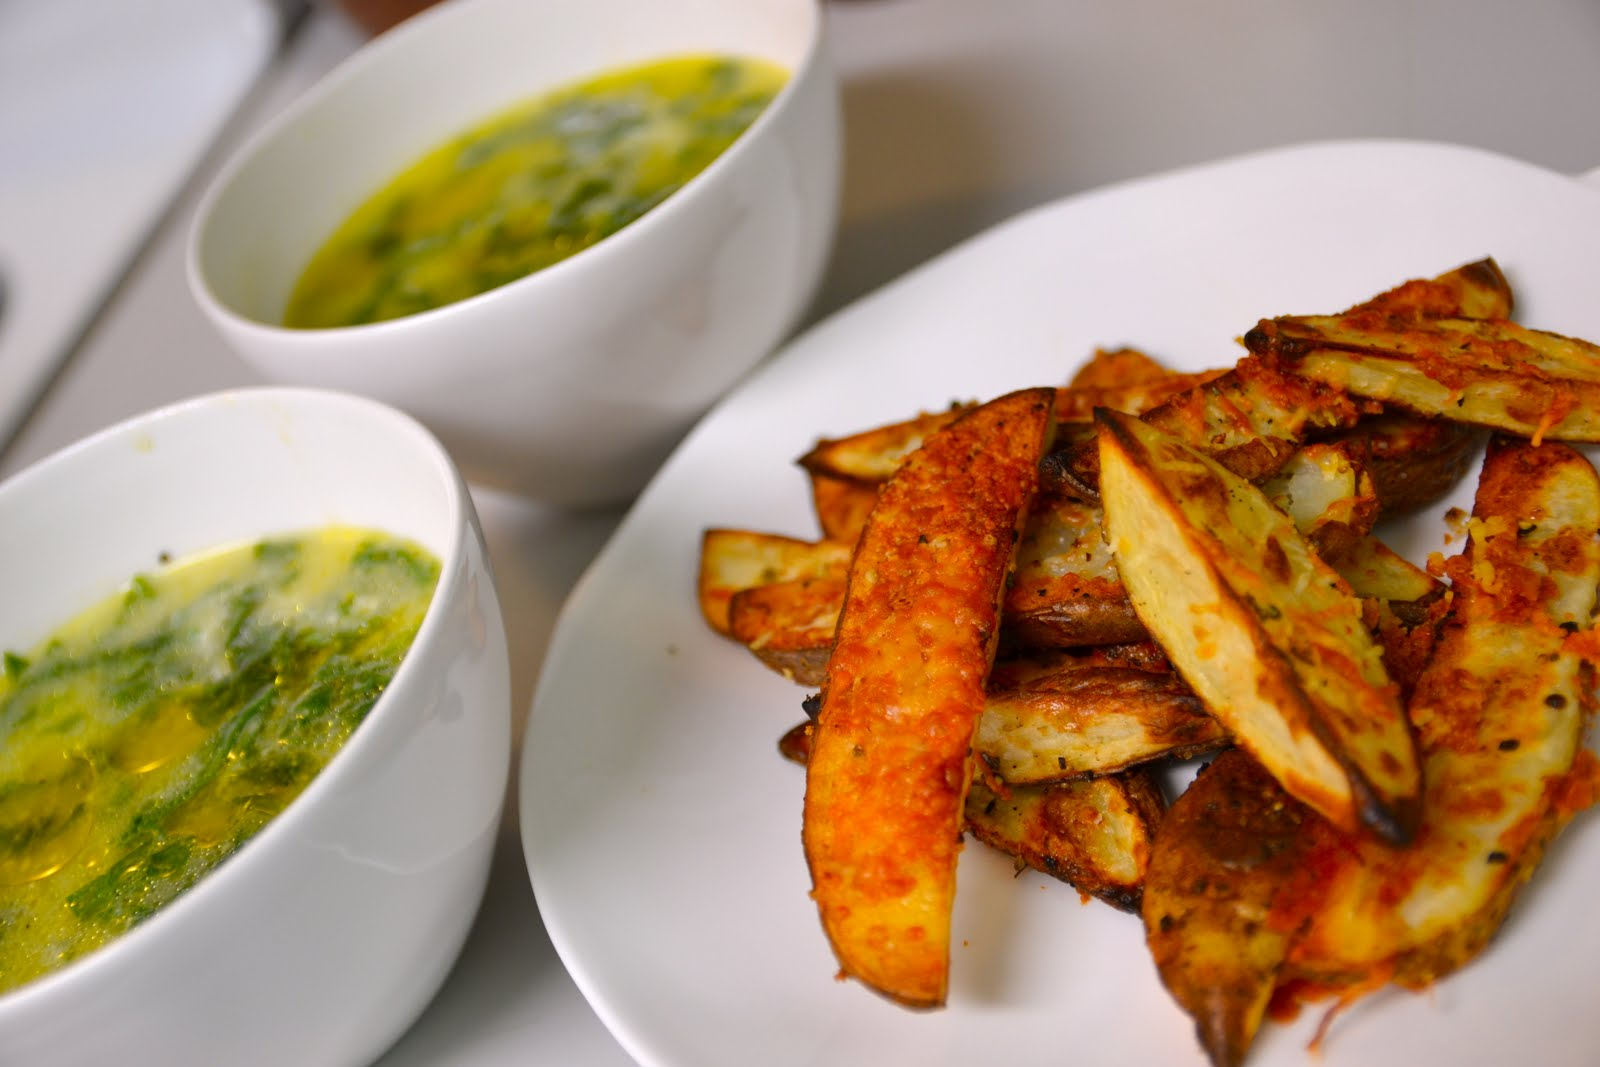 ... Amateur Cook: Polenta and Spinach Soup with Herb and Cheese Oven Fries